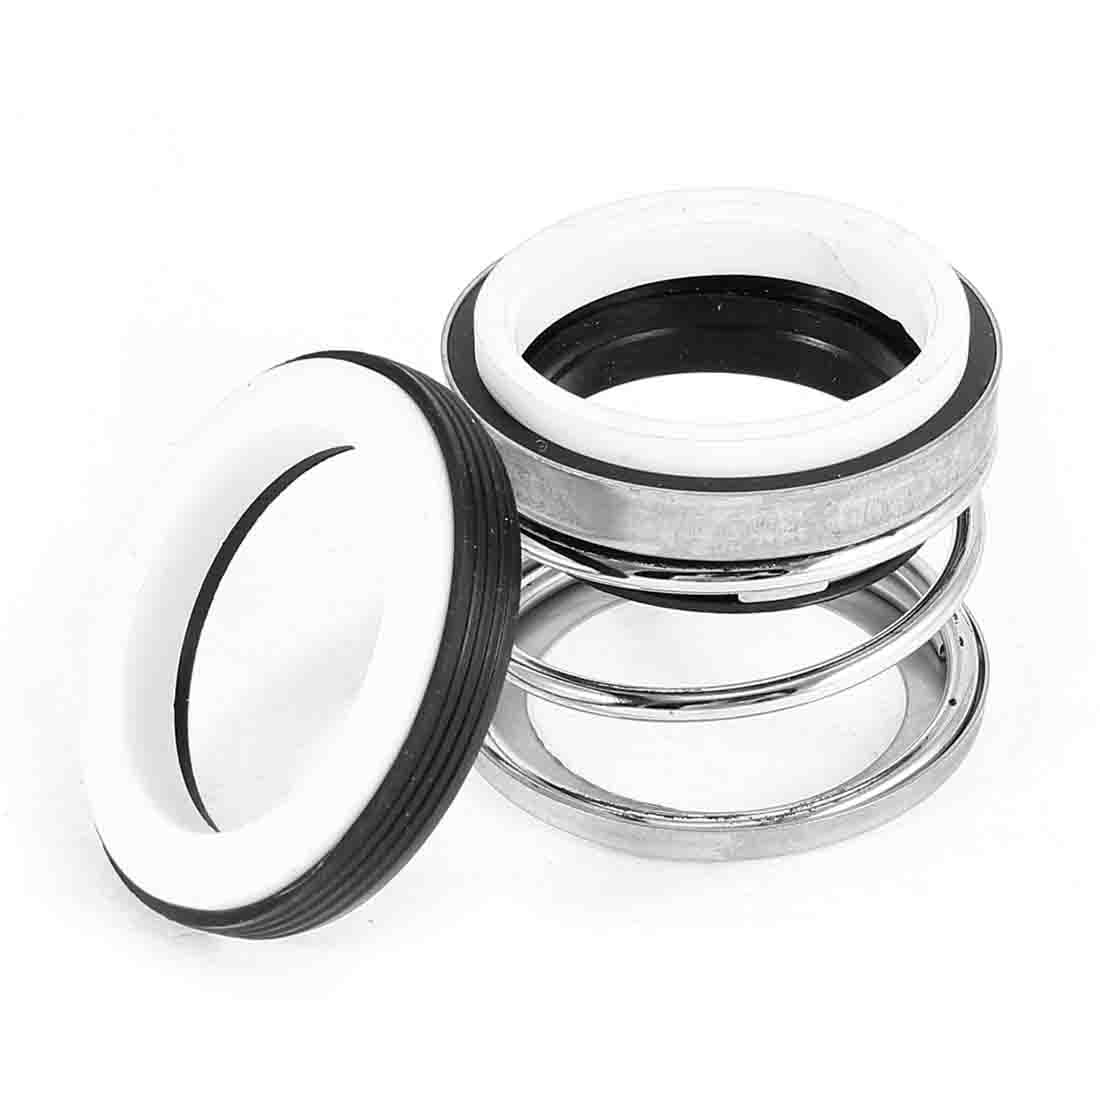 40mm Dia Single Coil Spring Black Rubber Bellows Sealing Shaft Mechanical Seal for Water Pump